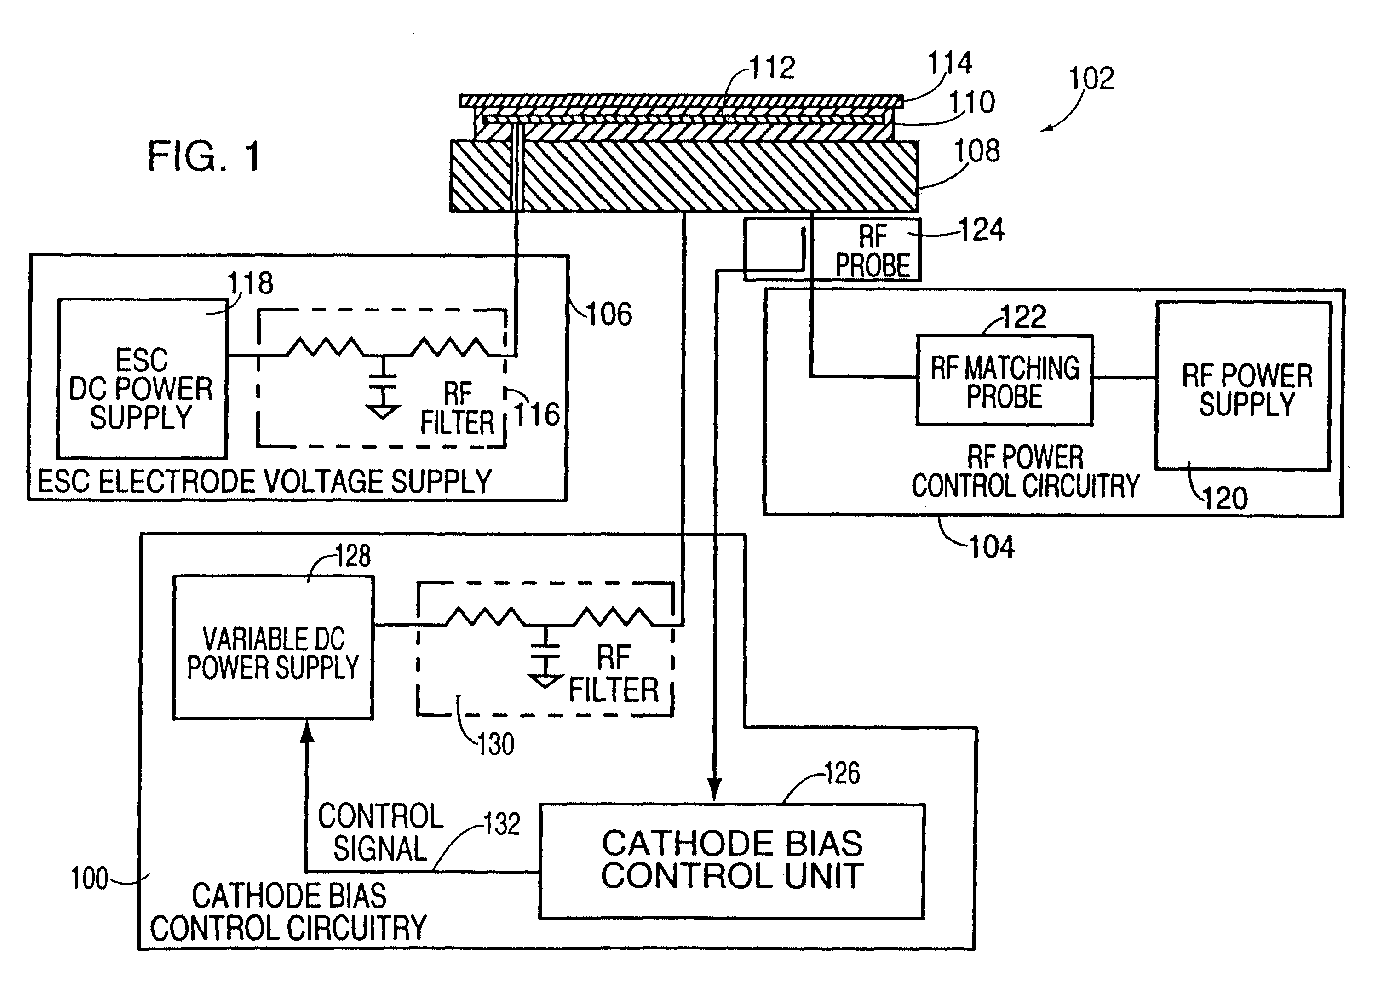 Apparatus and method for actively controlling the DC